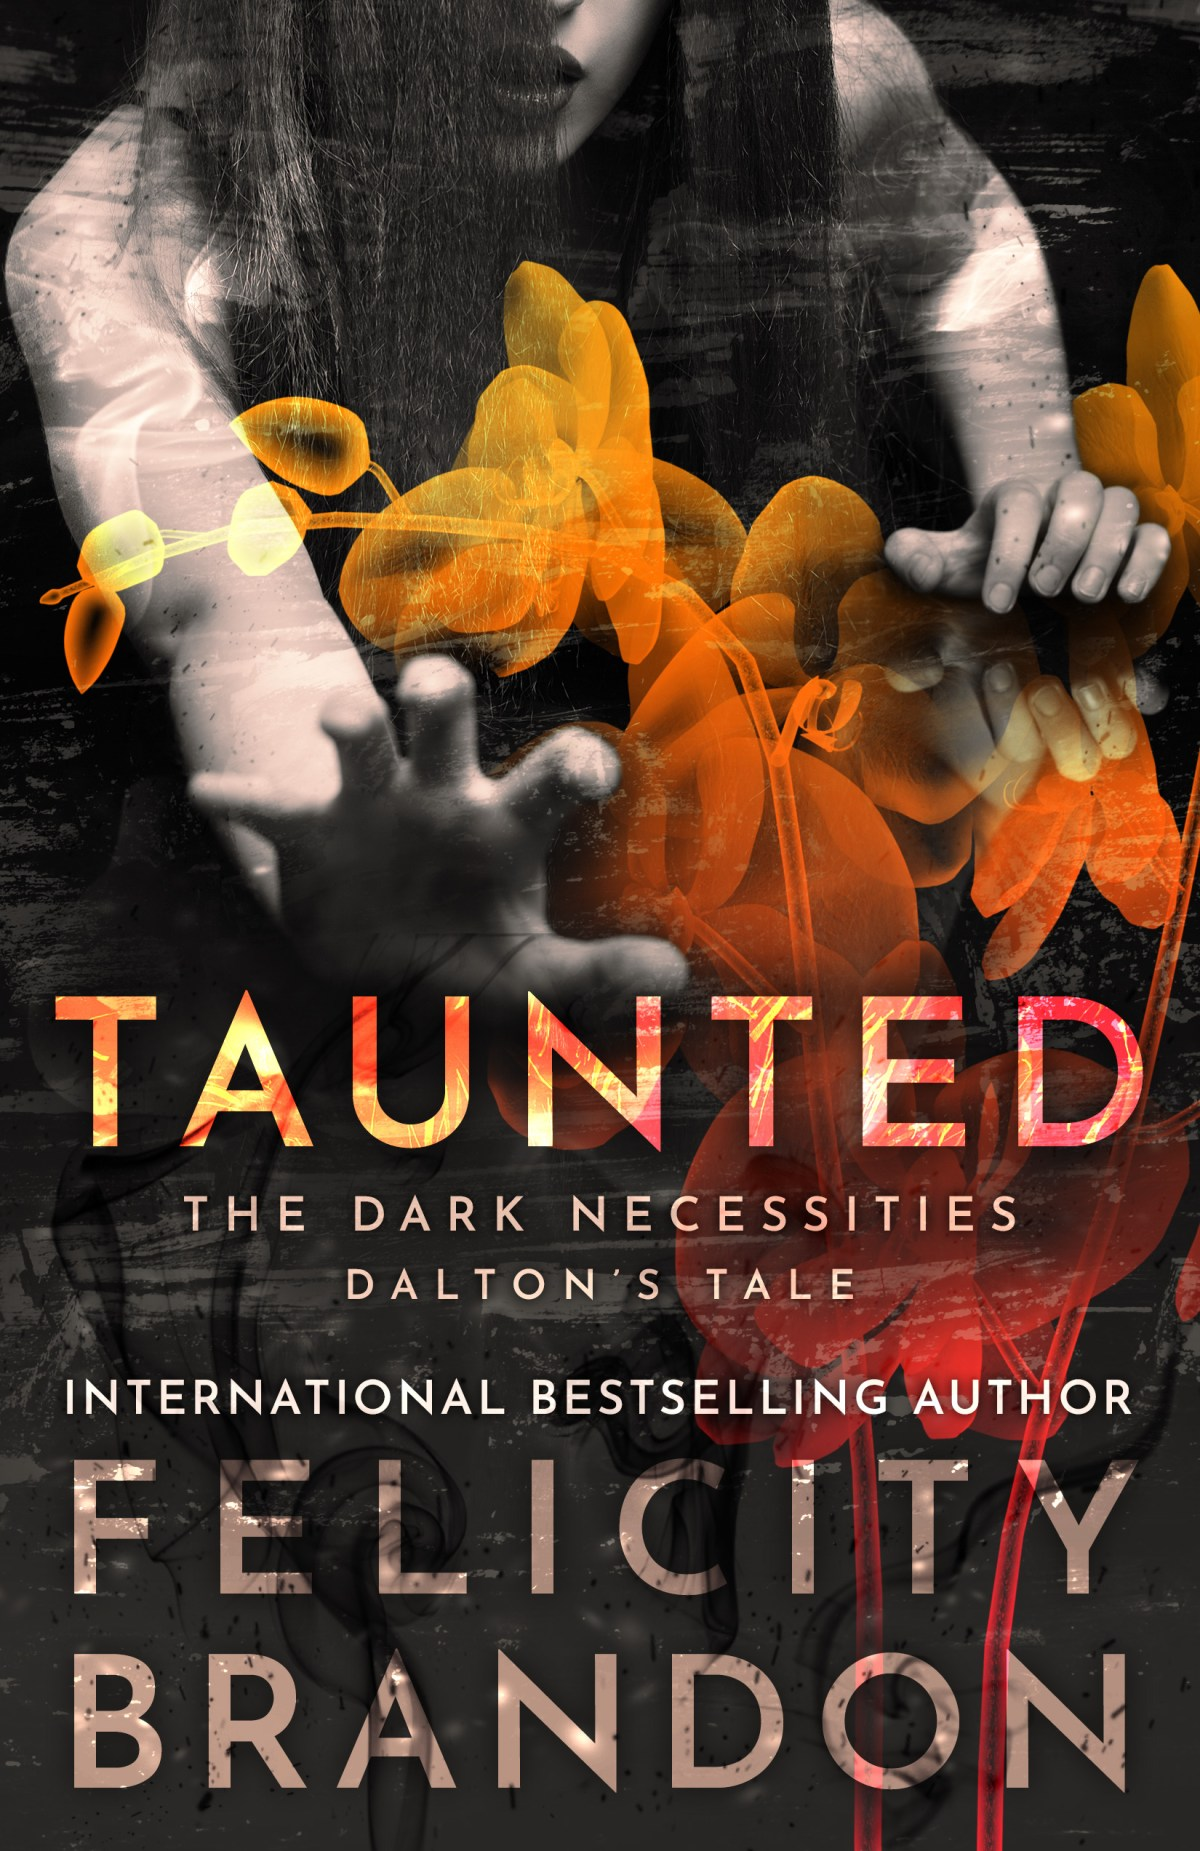 Taunted is FREE!